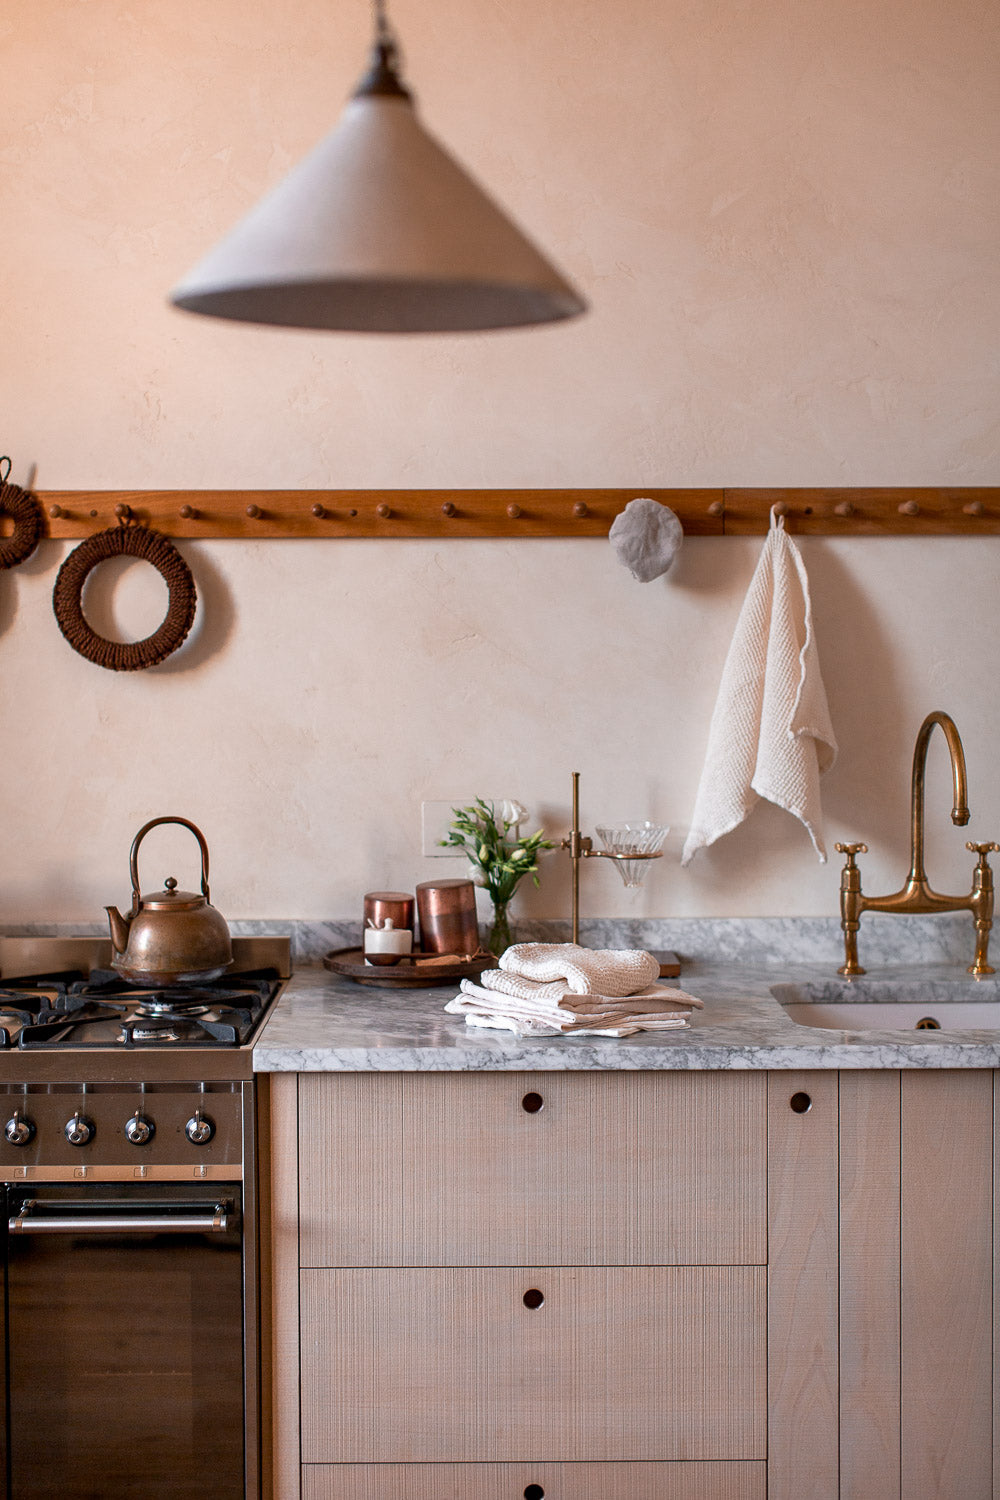 natural kitchen towels in linen and organic cotton